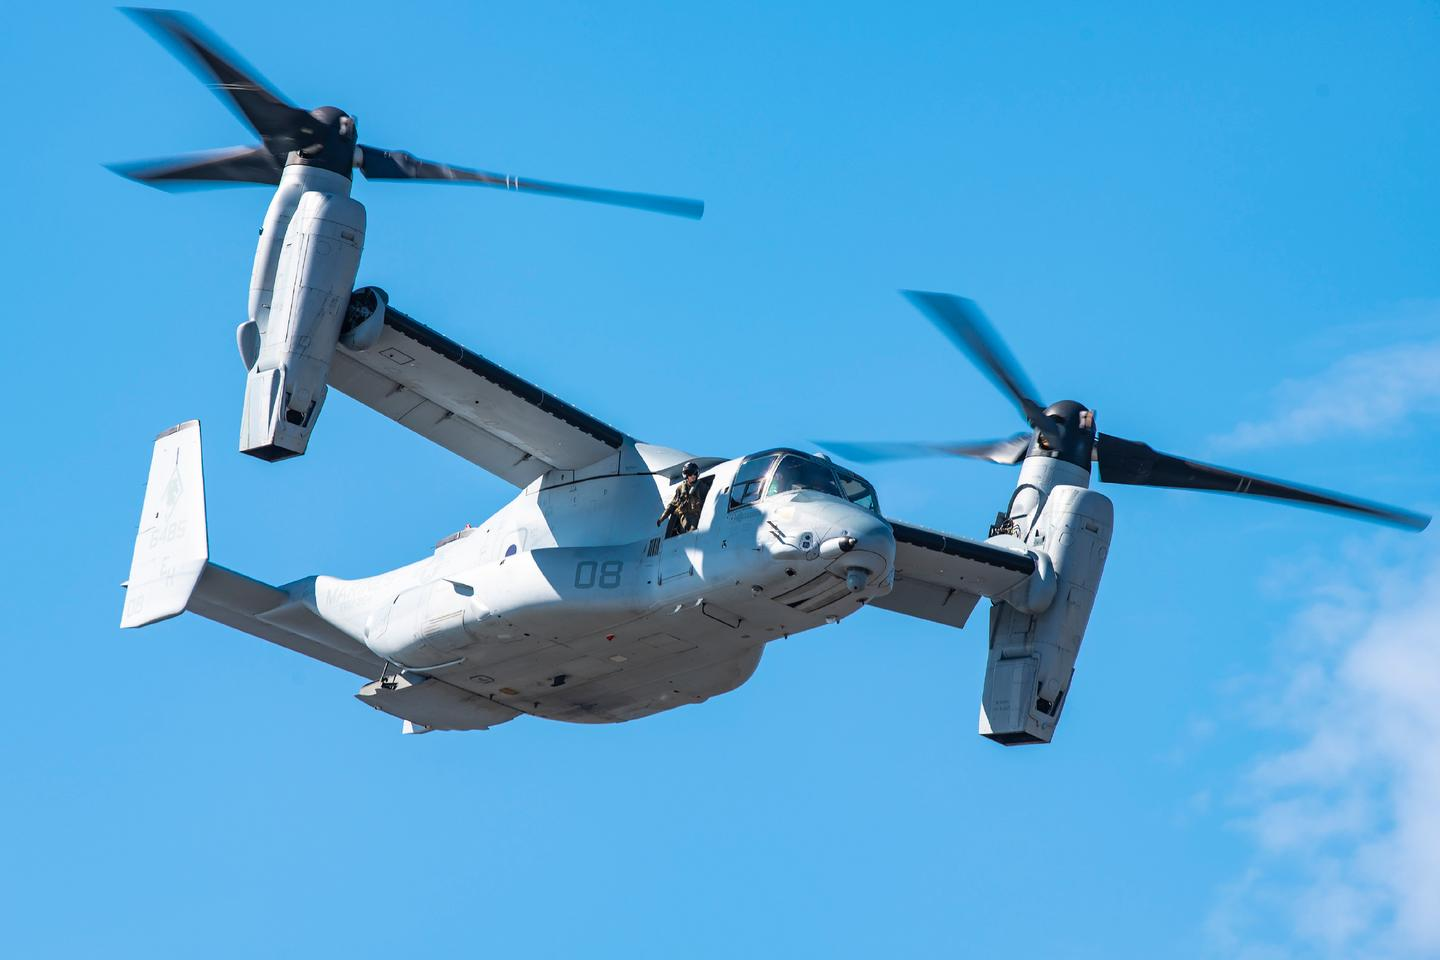 The Bell Boeing V-22 Osprey is the world's only in-service tiltrotor aircraft